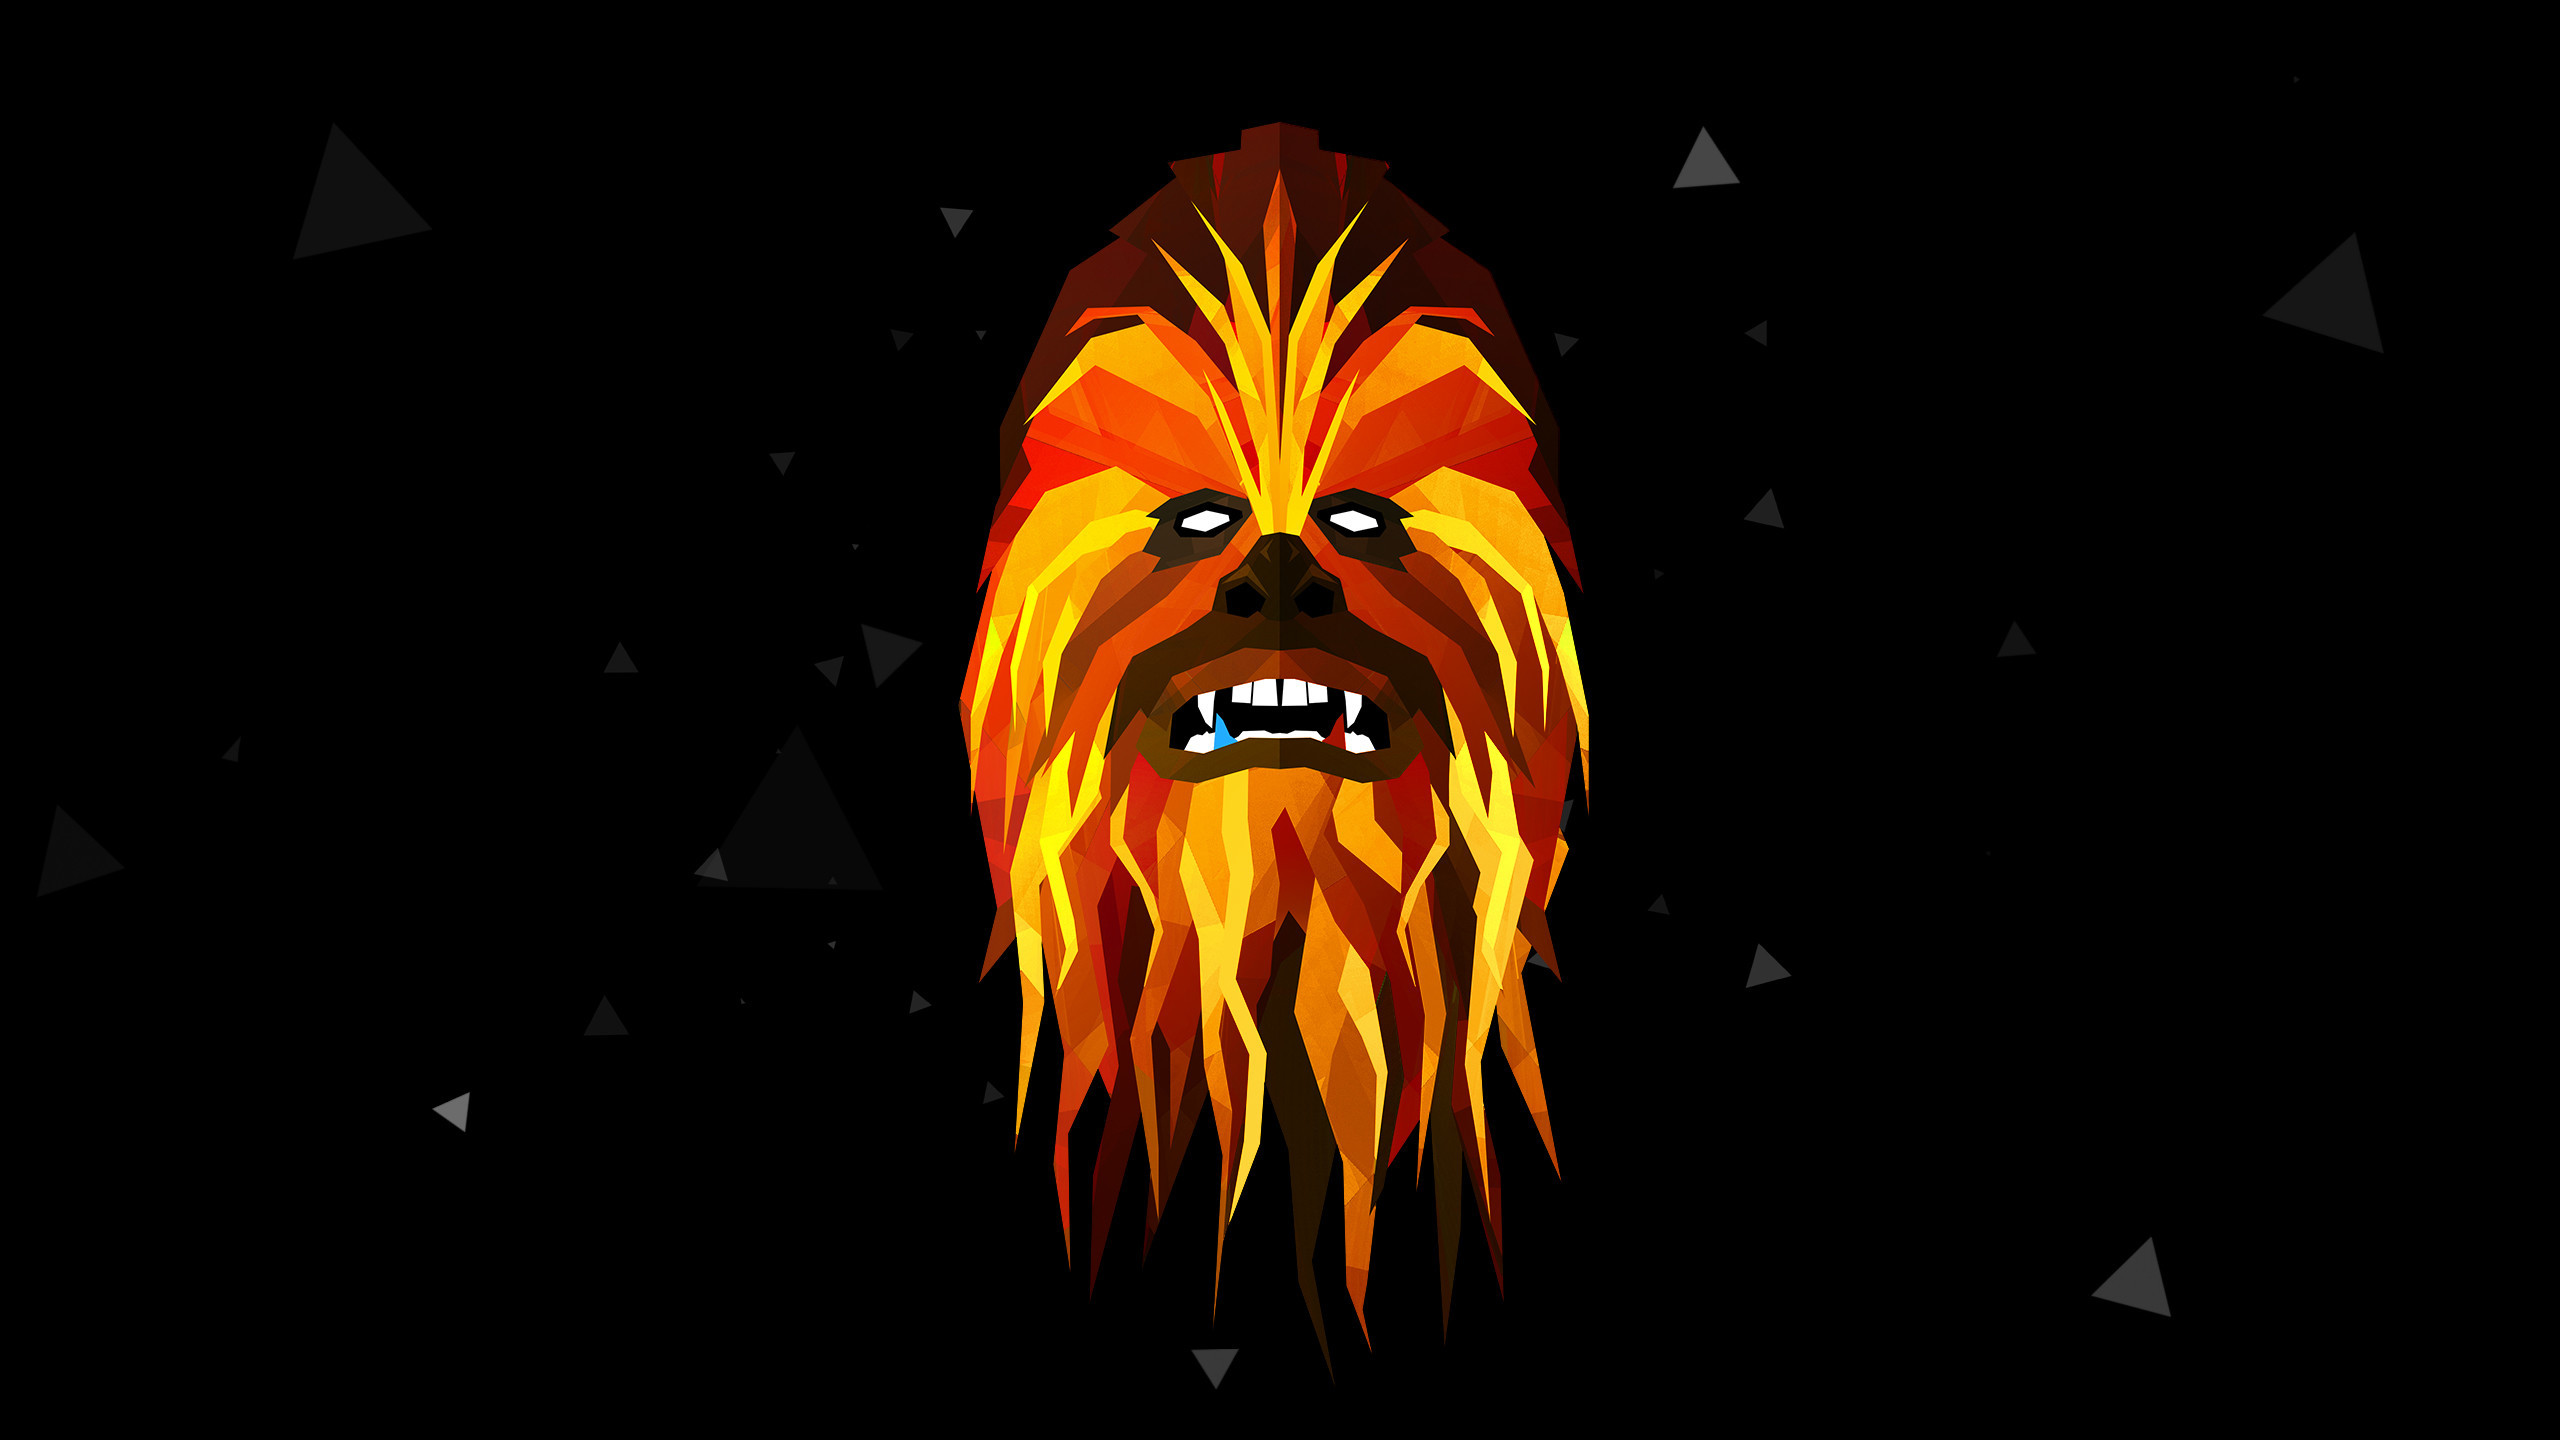 2560x1440 1920x1200 PC Chewbacca Wallpapers, Malte Debell